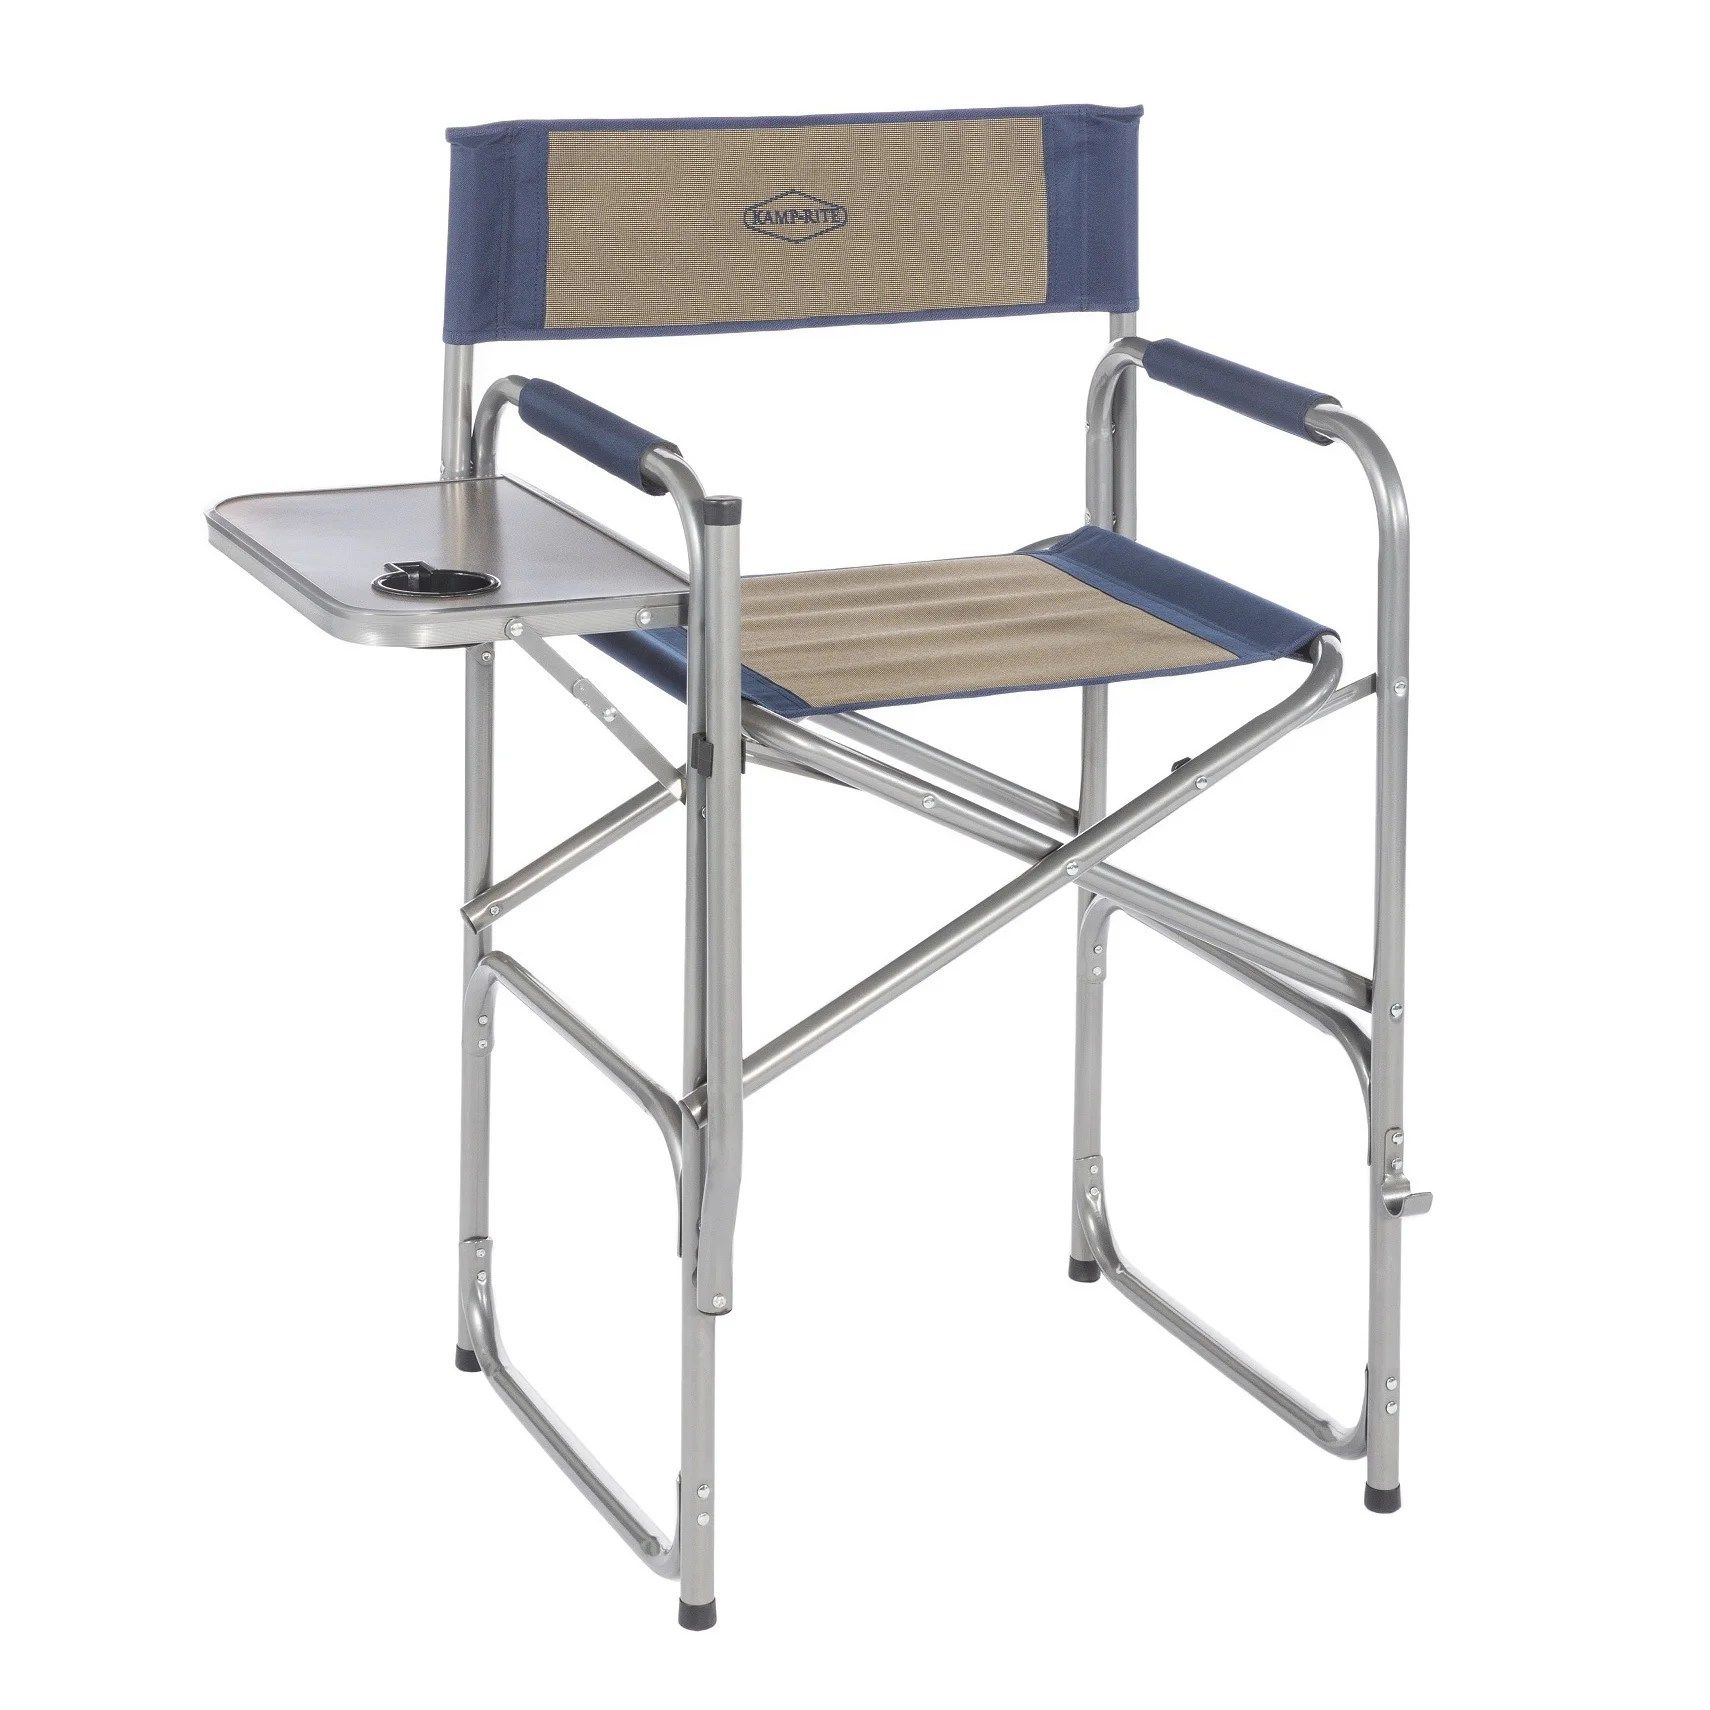 Folding Directors Chair With Side Table Kamp Rite High Back Director S Chair With Side Table